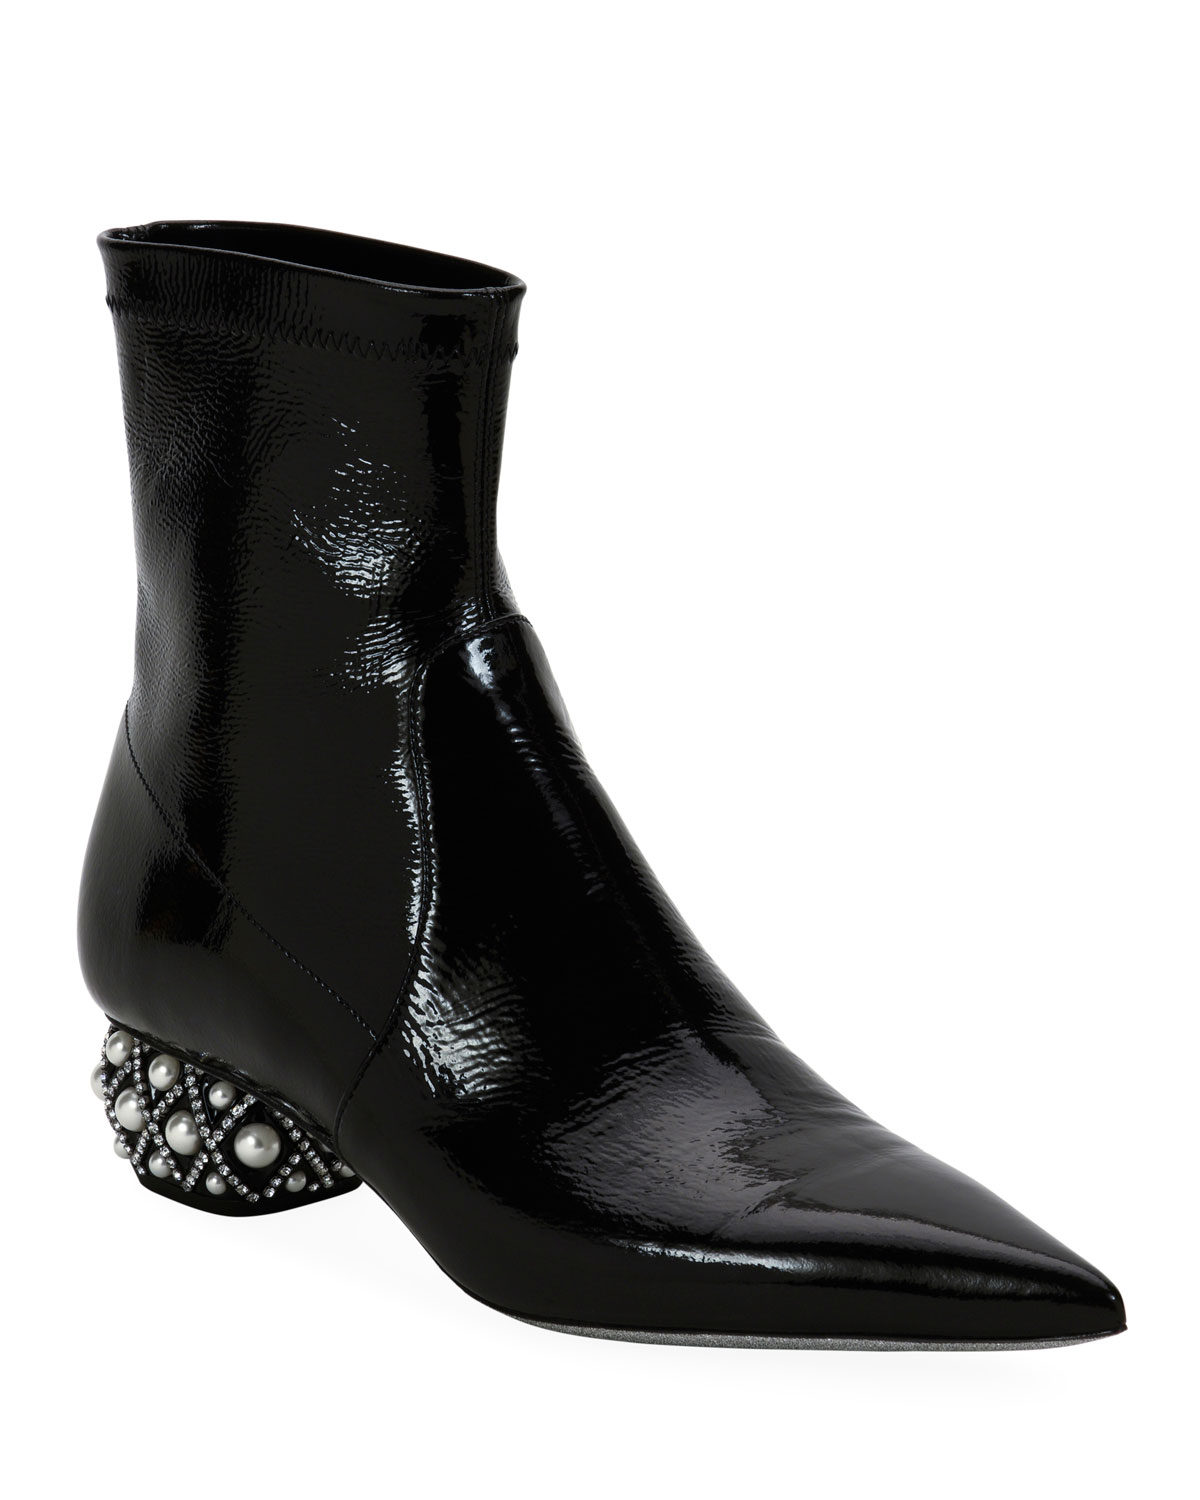 Patent Leather Booties with Pearly Heel